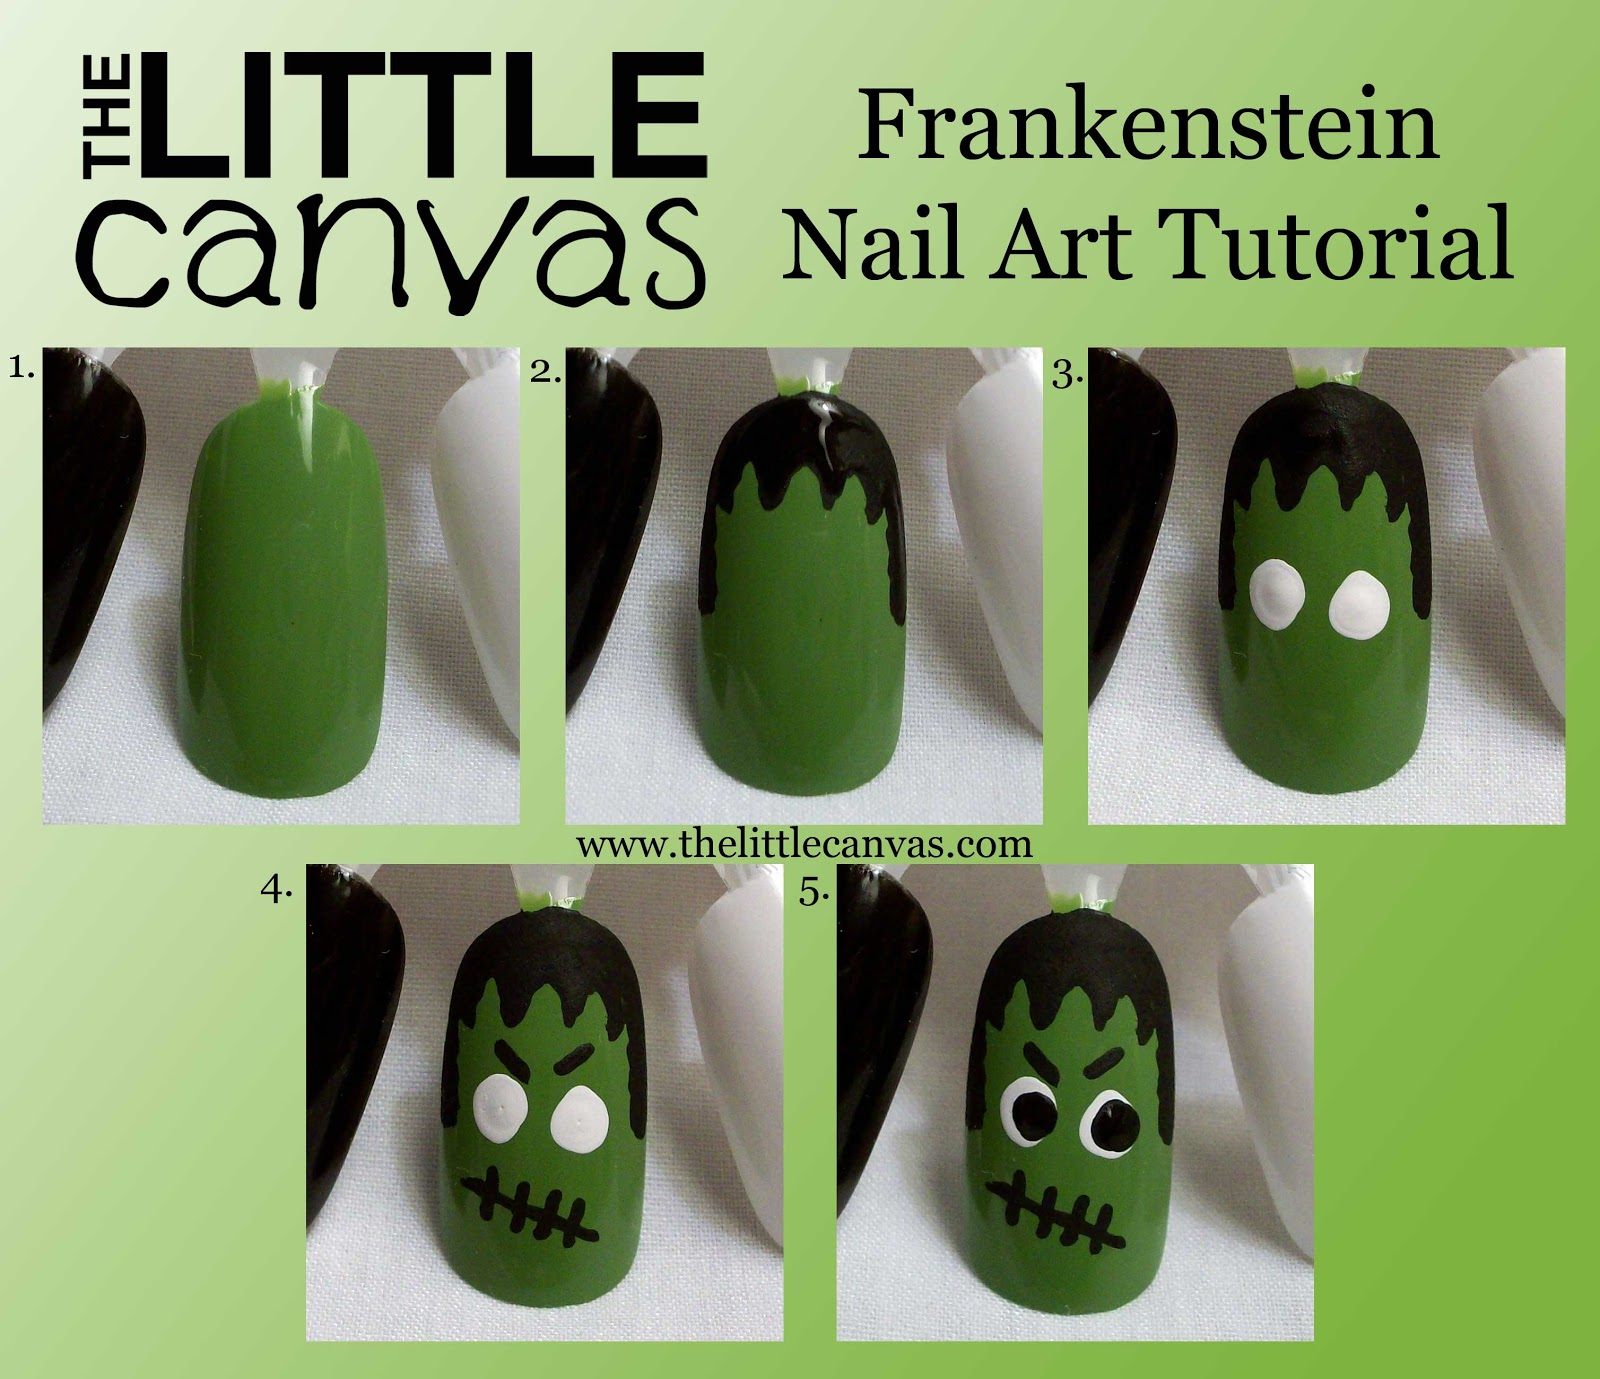 Frankenstein and His Bride - Nail Art Tutorial - The Little Canvas